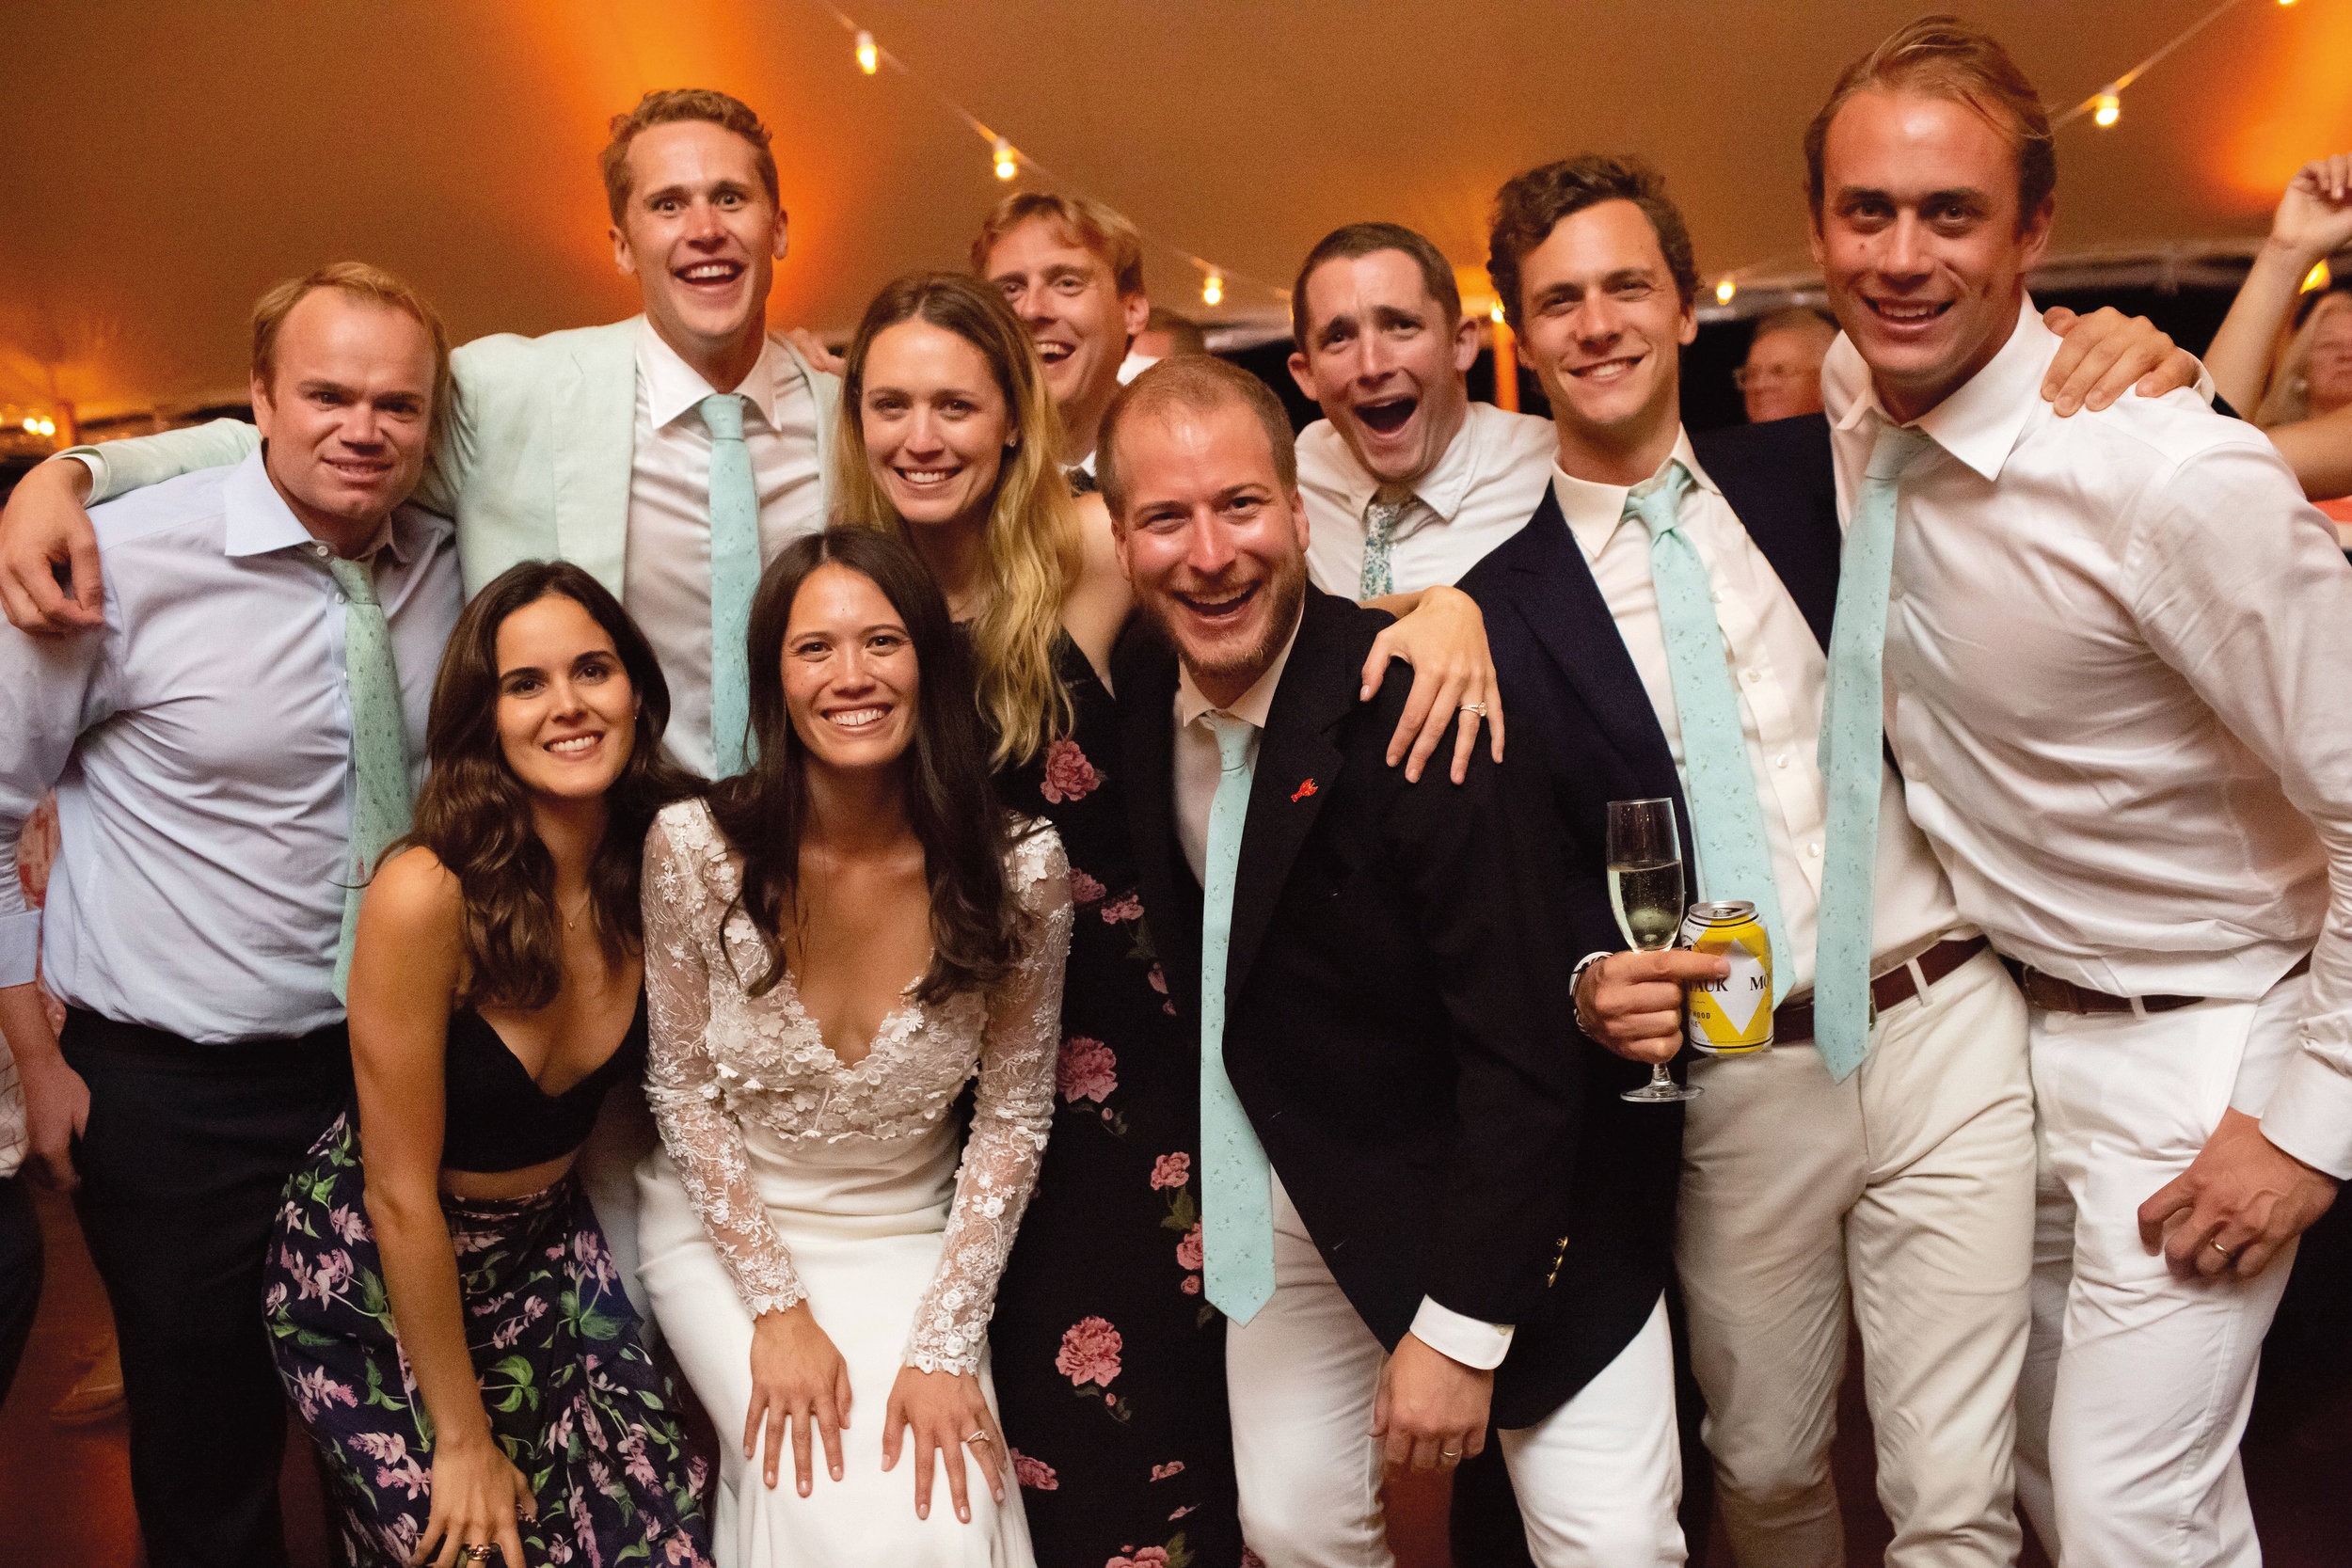 Paulies at the wedding of Clayton Sachs '06 and Lily Nguyen in Amagansett, N.Y. (l. to r.) back: Arthur Zeckendorf '05, the groom, Daphne Grayson '06, Patrick Johnson '06, Alex Pearce '06, Spencer Salovaara '06, and Jay Clapp '06; front: Giovanna Campagna '06, the bride, and Hank Garrett '06 (not pictured: Lawrence Cheuk '06).